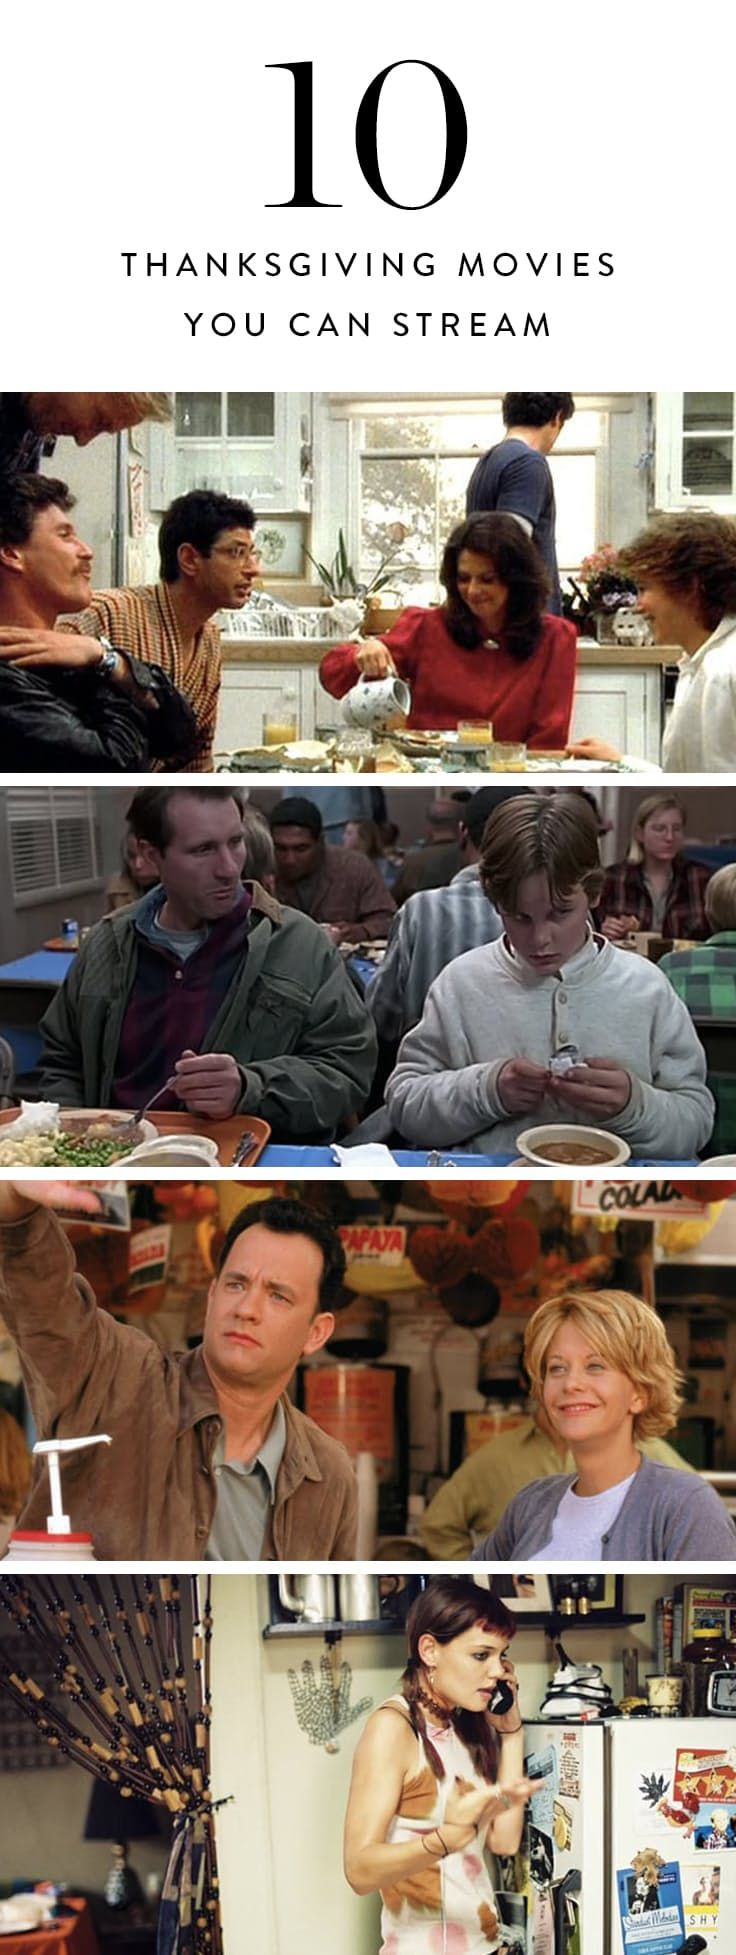 10 Thanksgiving Movies You Can Stream in a Post-Turkey Haze  via @PureWow (=)